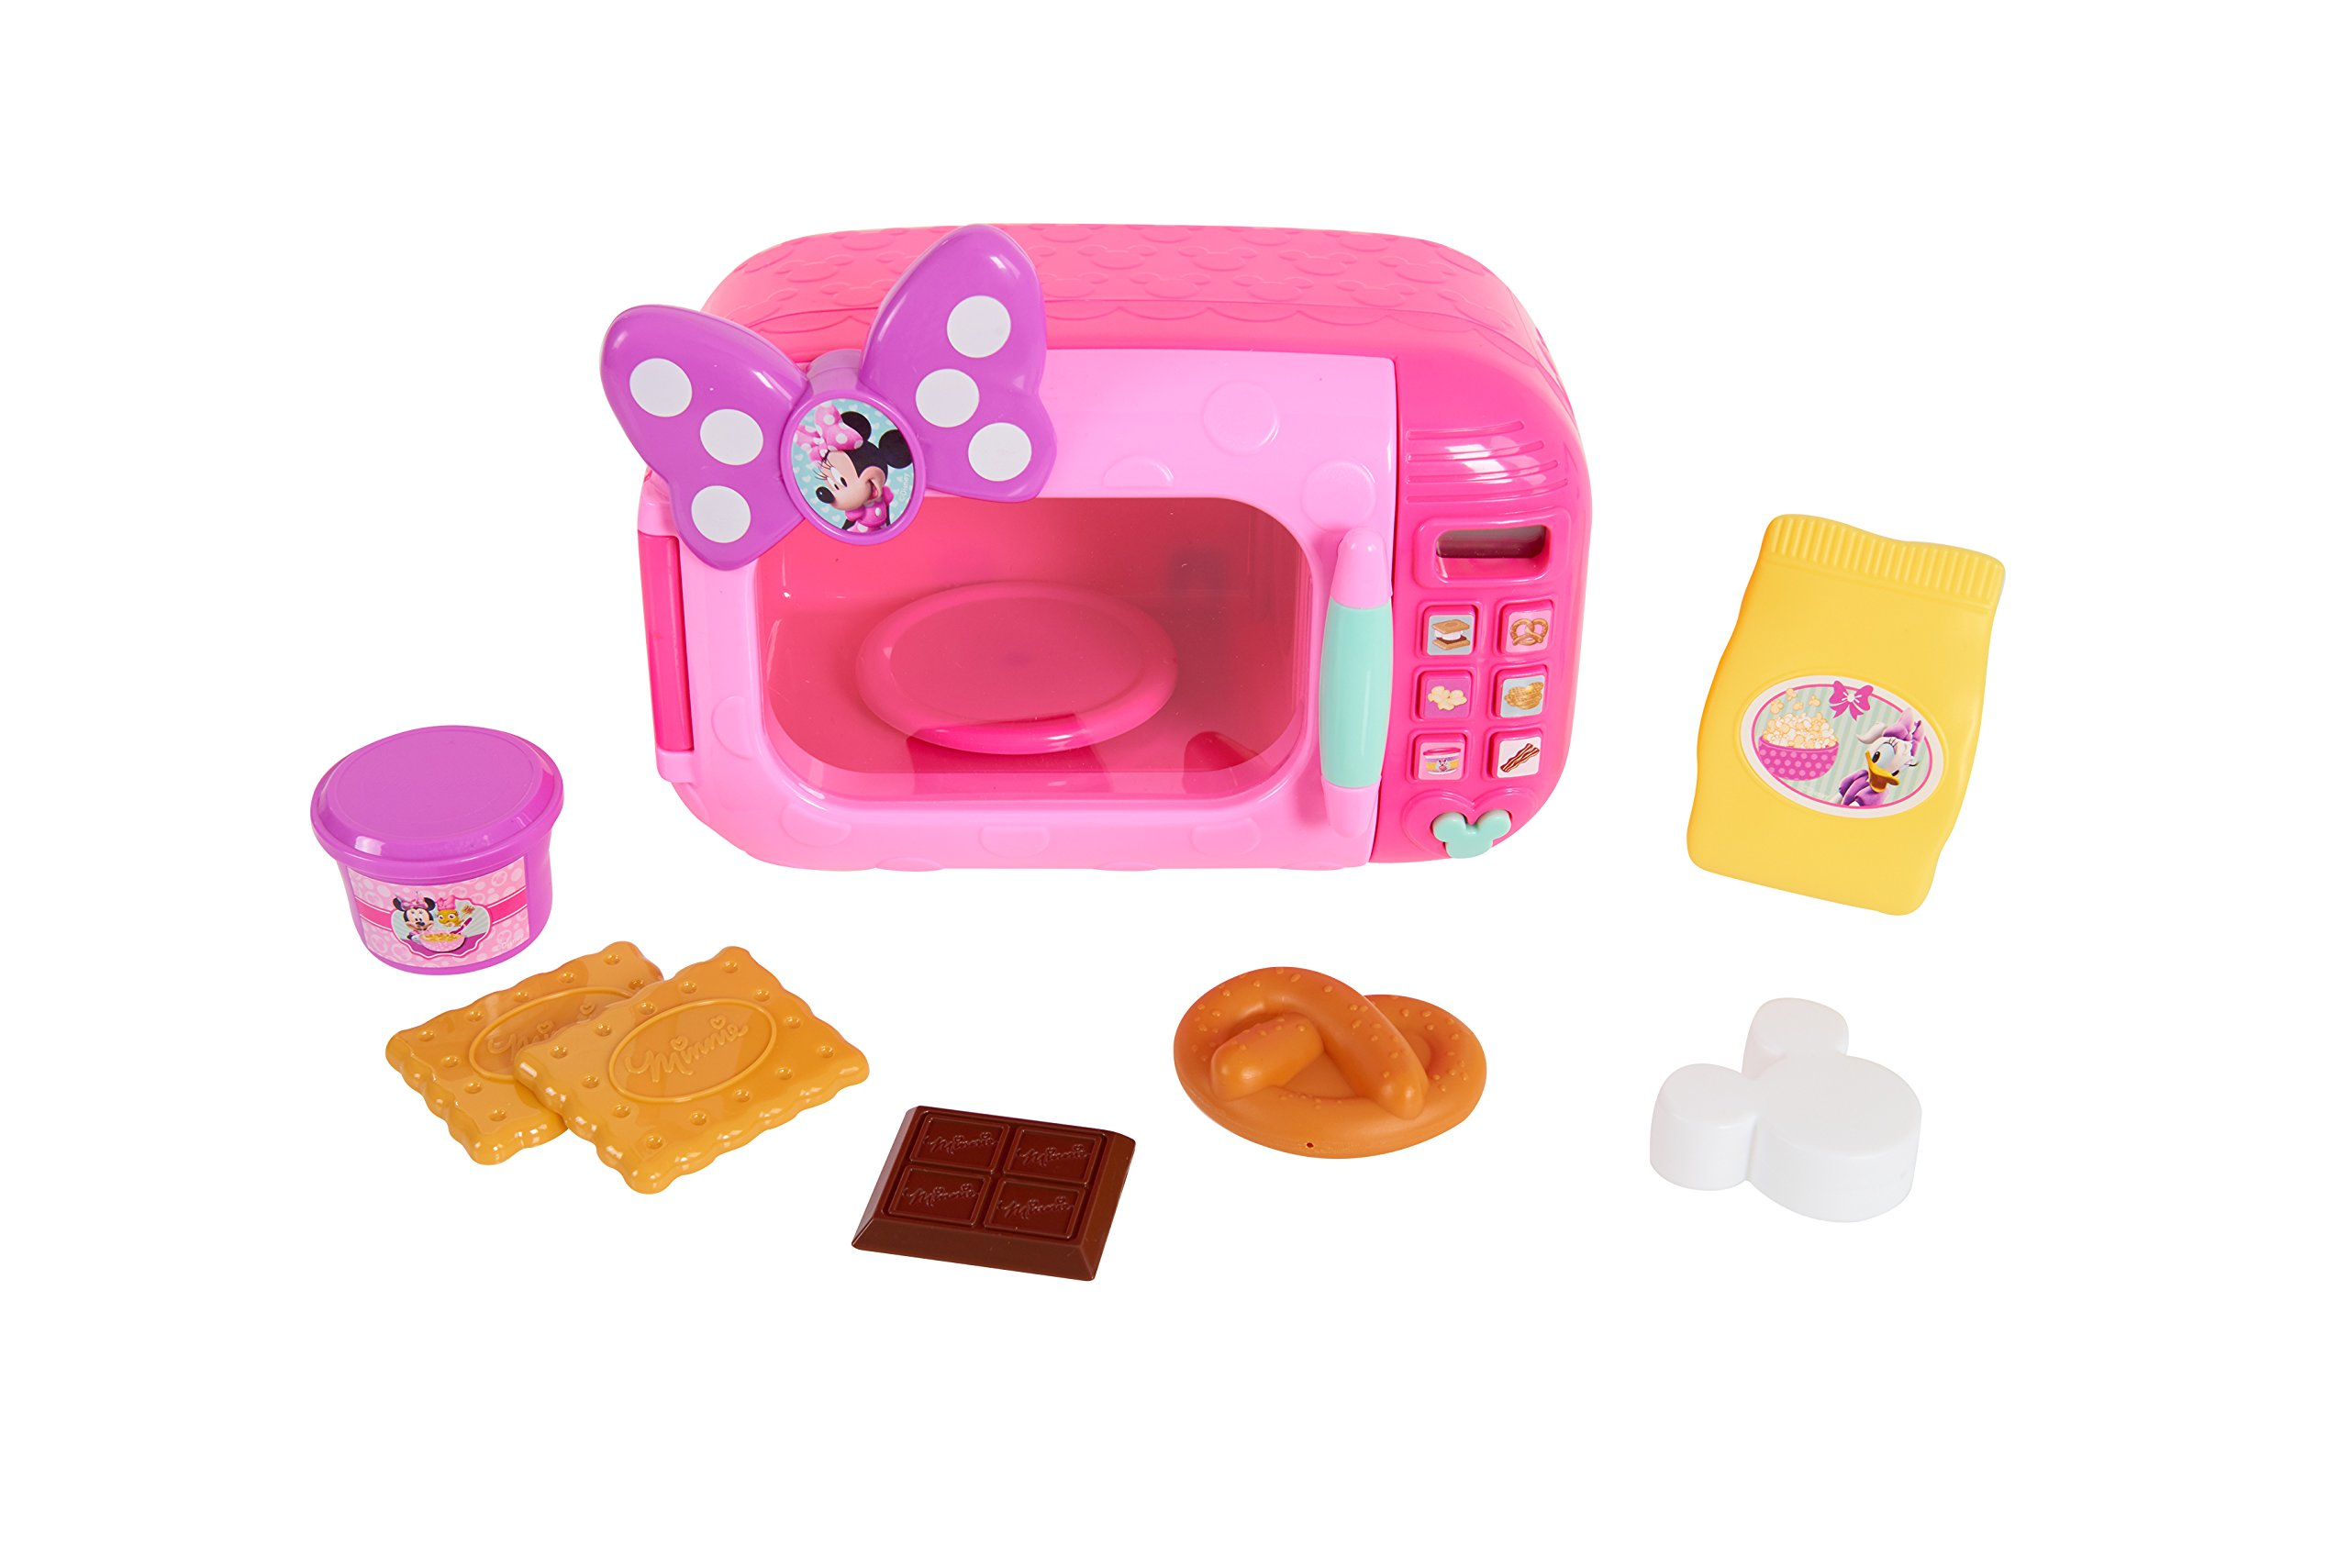 Minnie Mouse Marvelous Microwave Set by Minnie Mouse